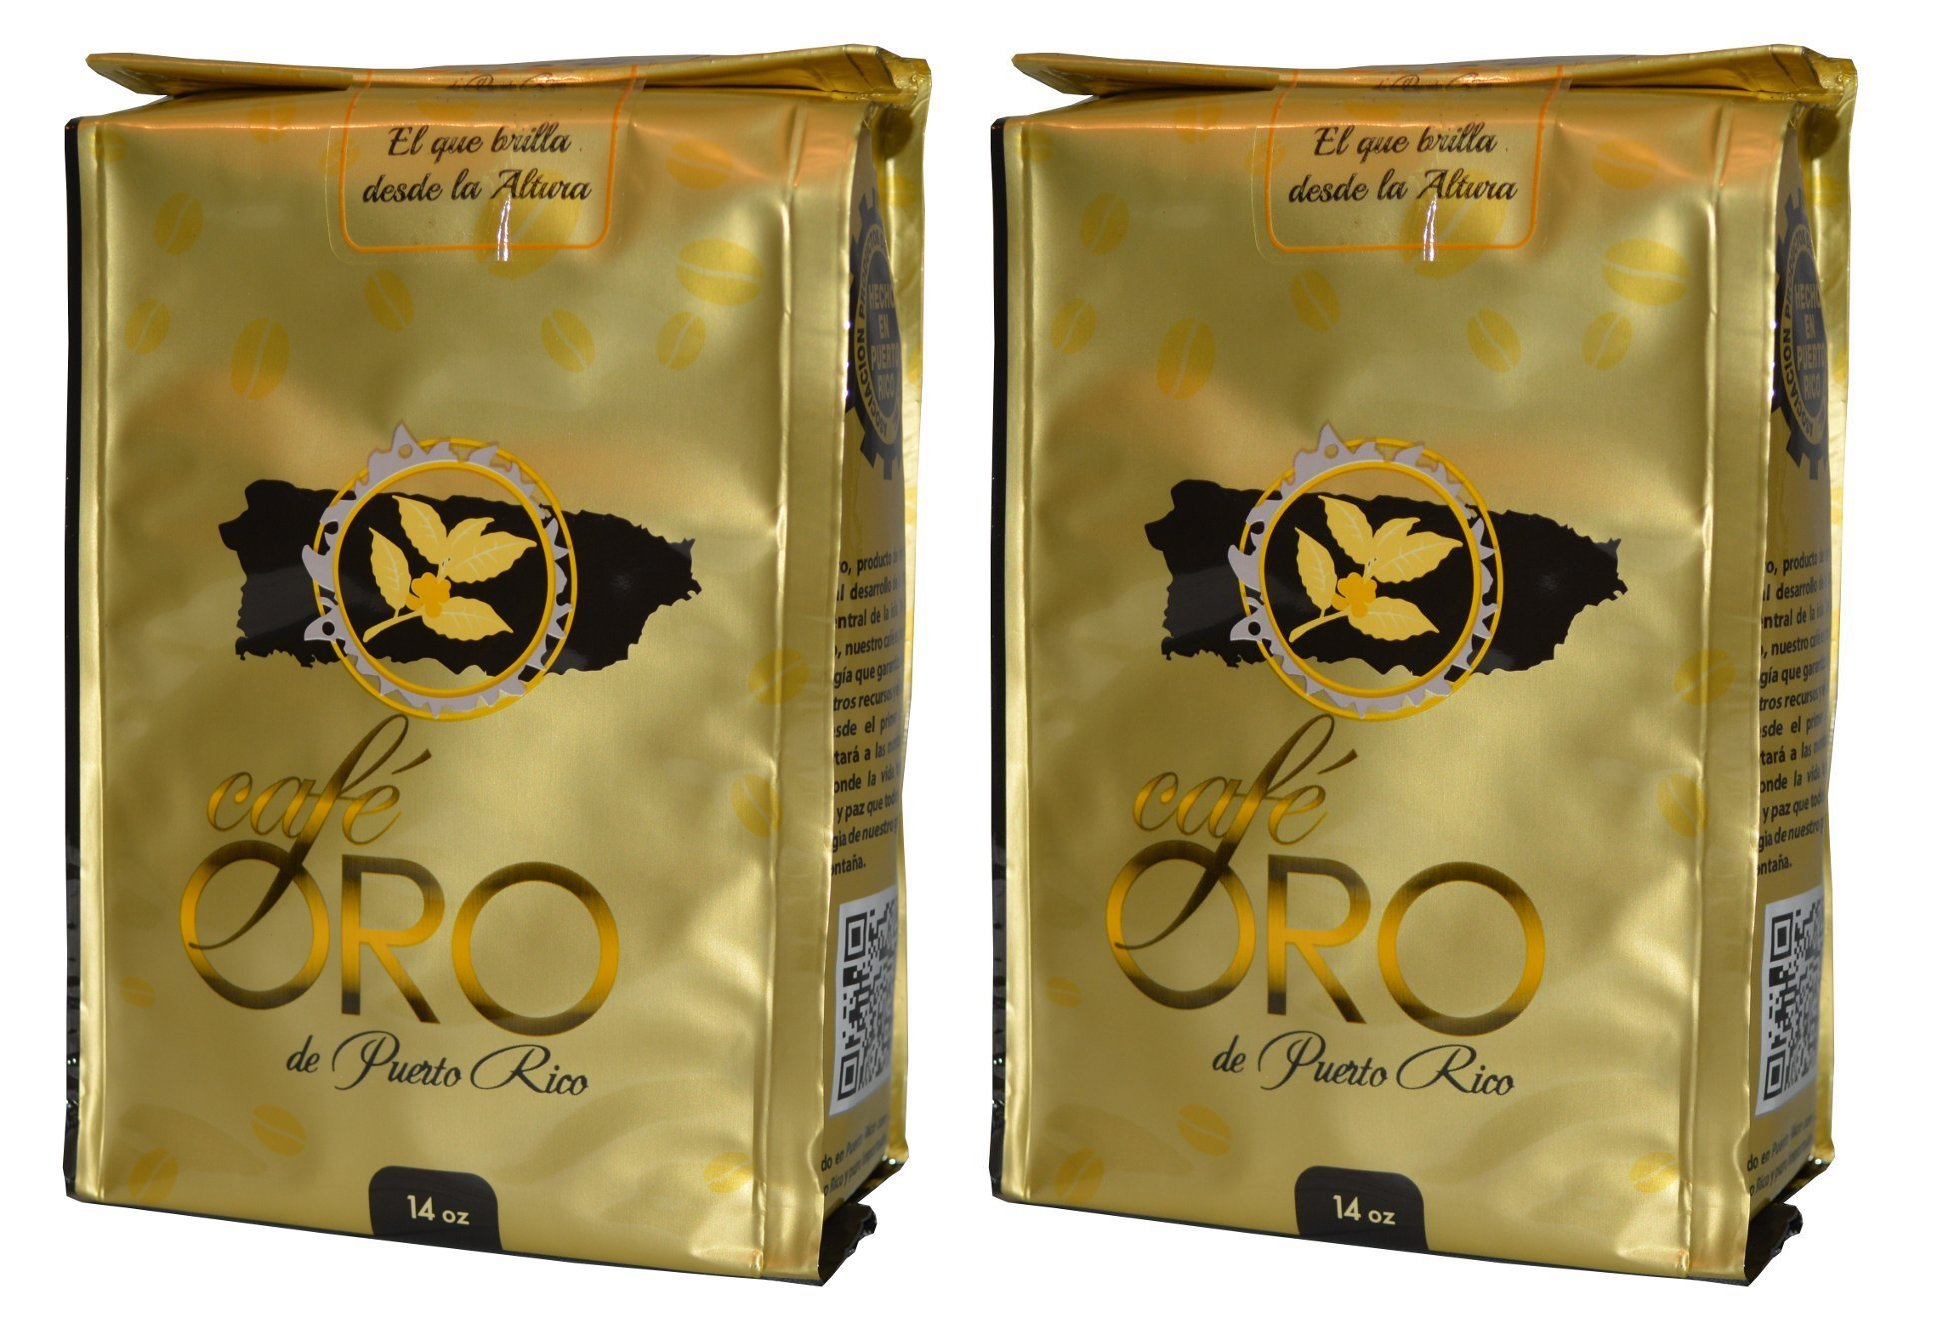 Cafe de Oro de Puerto Rico 14oz / Gold Coffee from Puerto Rico 14oz (2